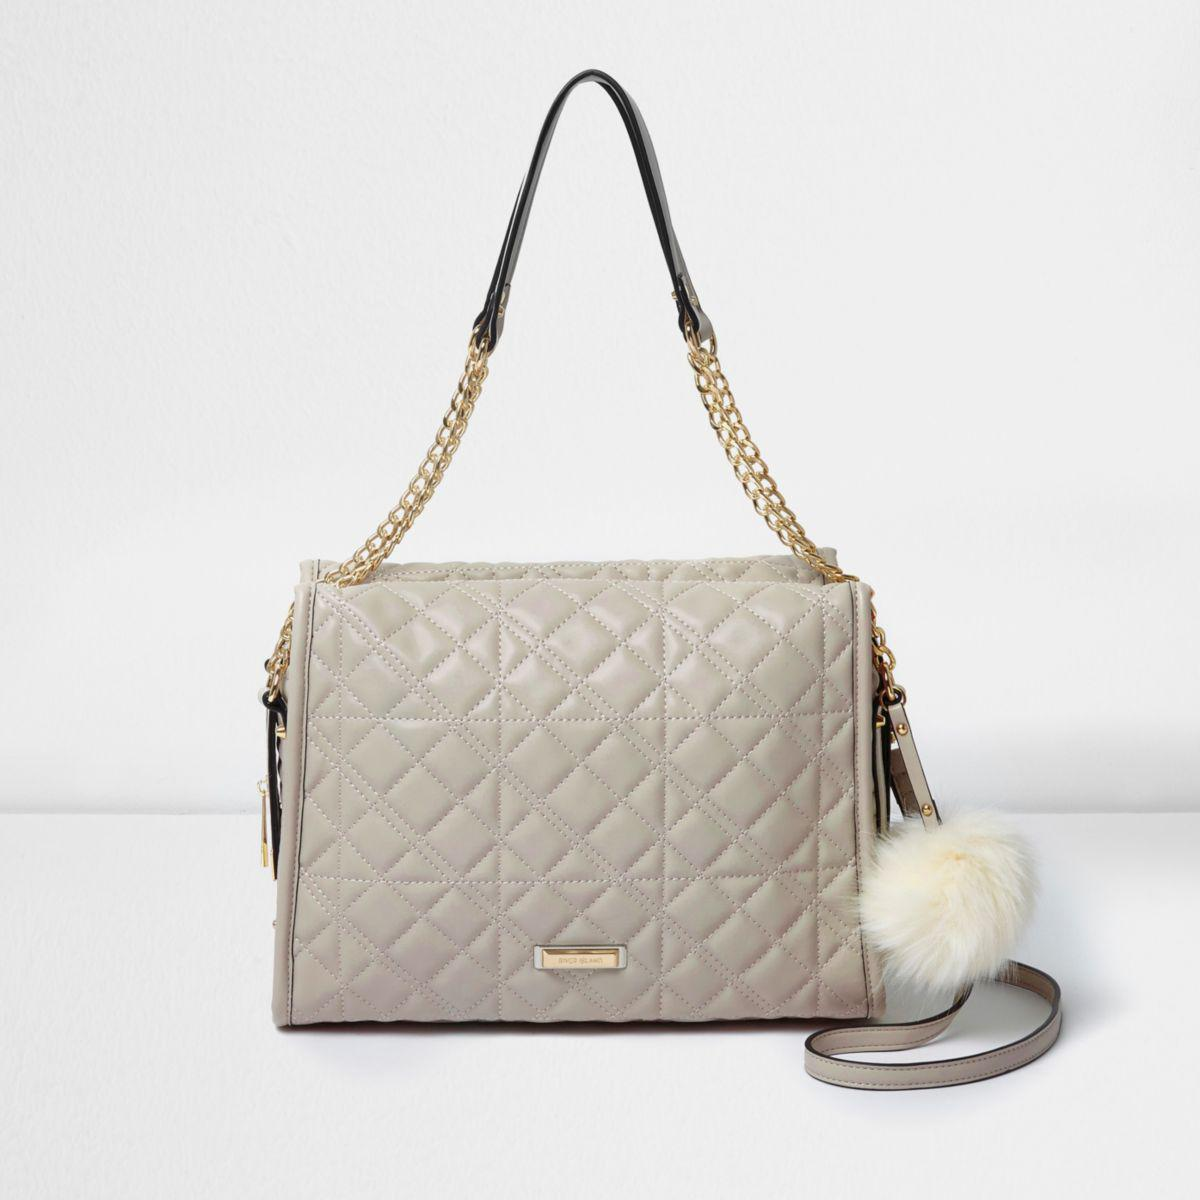 River Island Grey Quilted Pom Pom Chain Handle Tote Bag in Grey